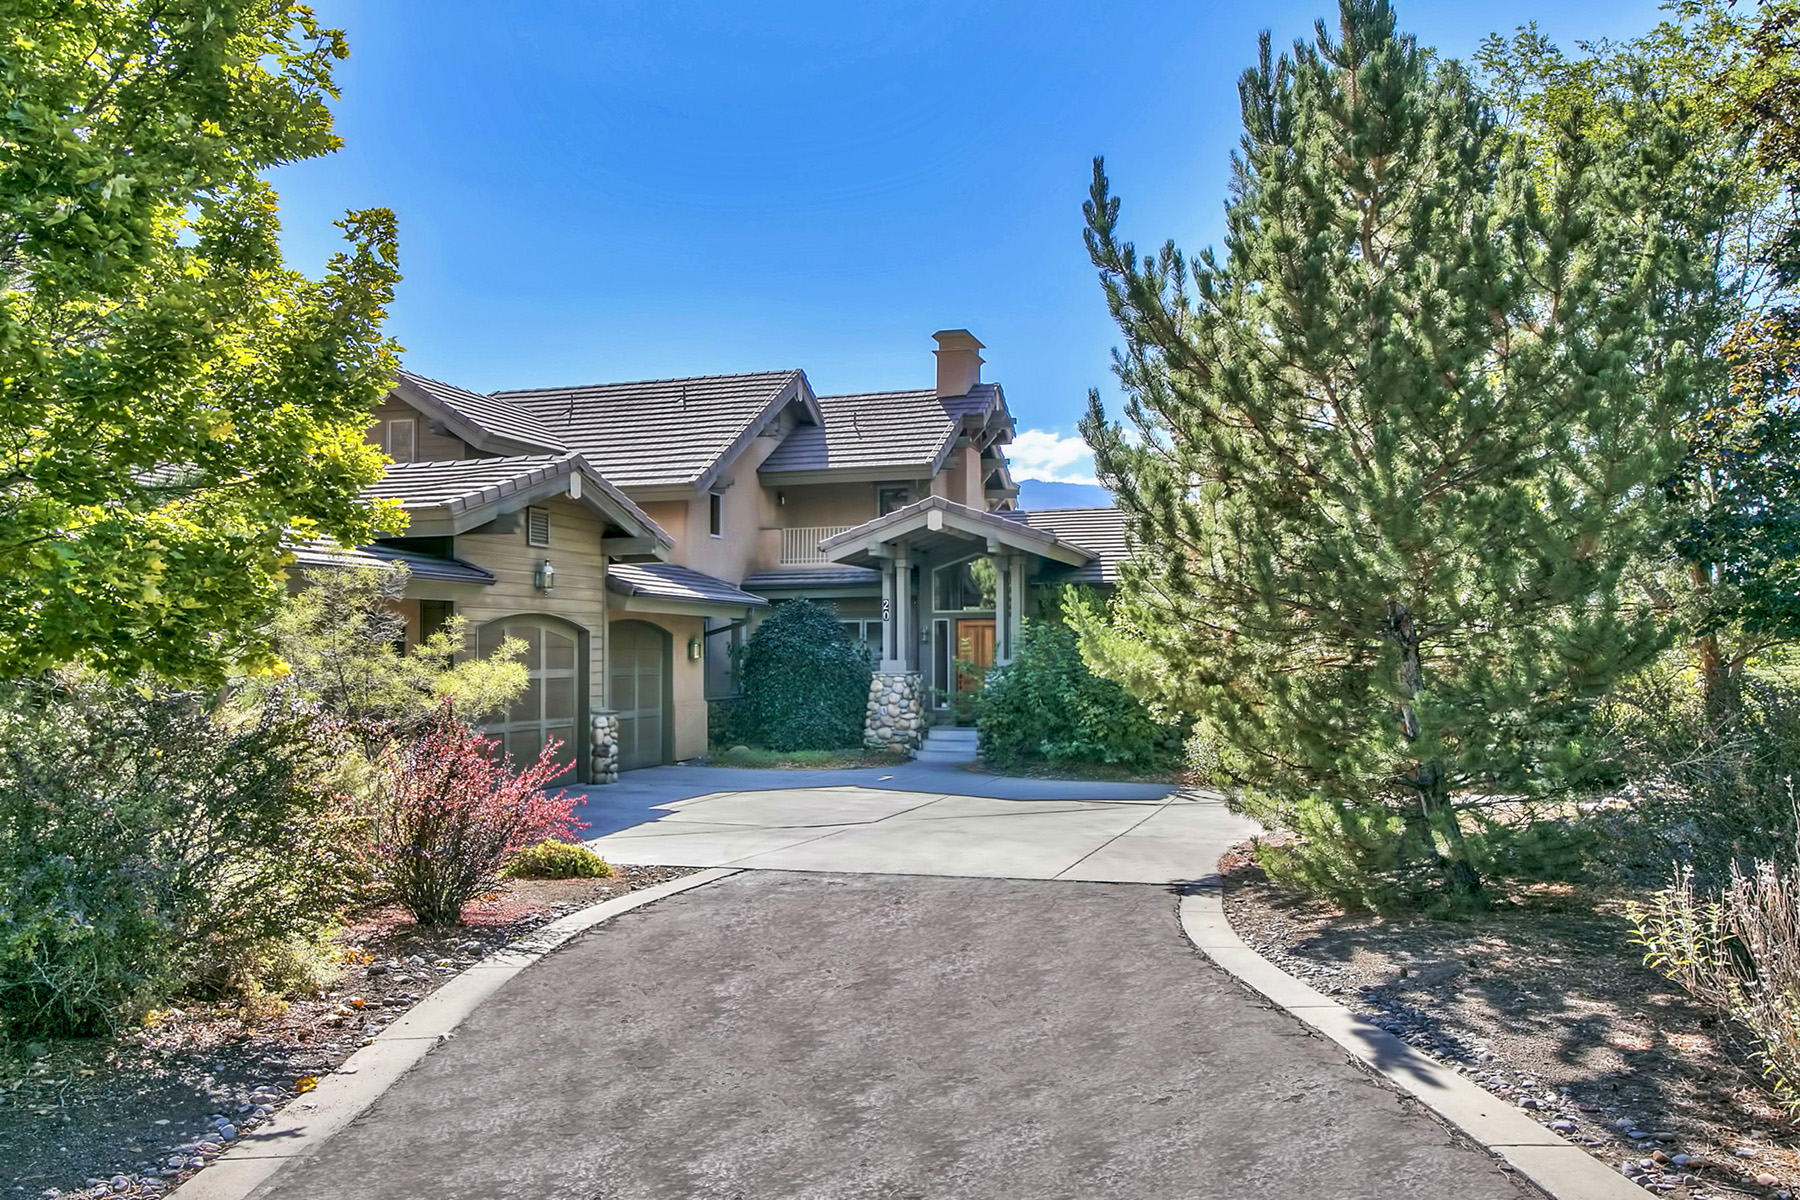 Single Family Home for Active at 20 Silver Lynx Way Verdi, Nevada 89439 United States